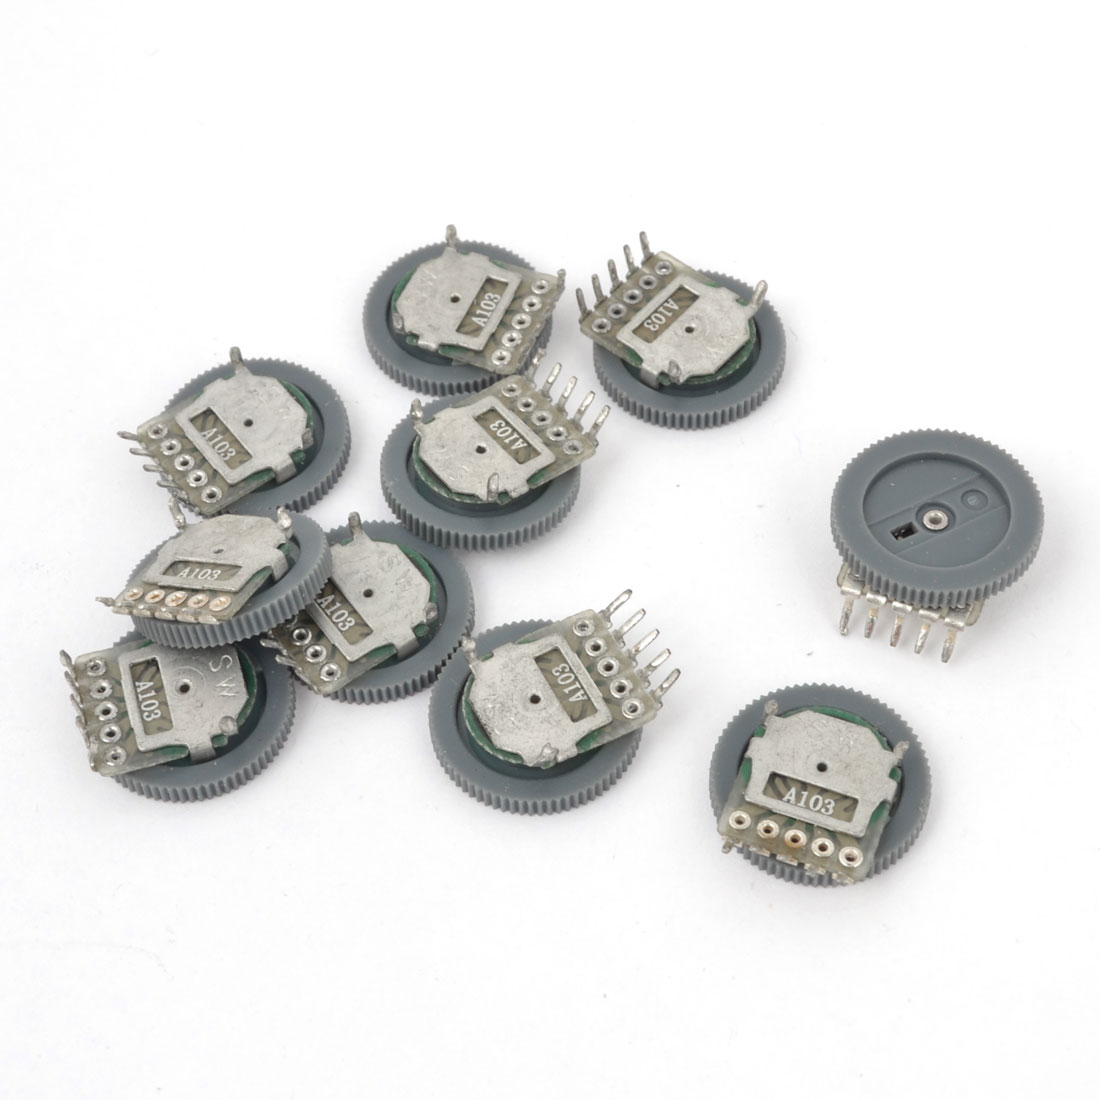 10 Pieces 16mm Dia 5 Terminal Adjustable Potentiometer 10K Ohm Gray